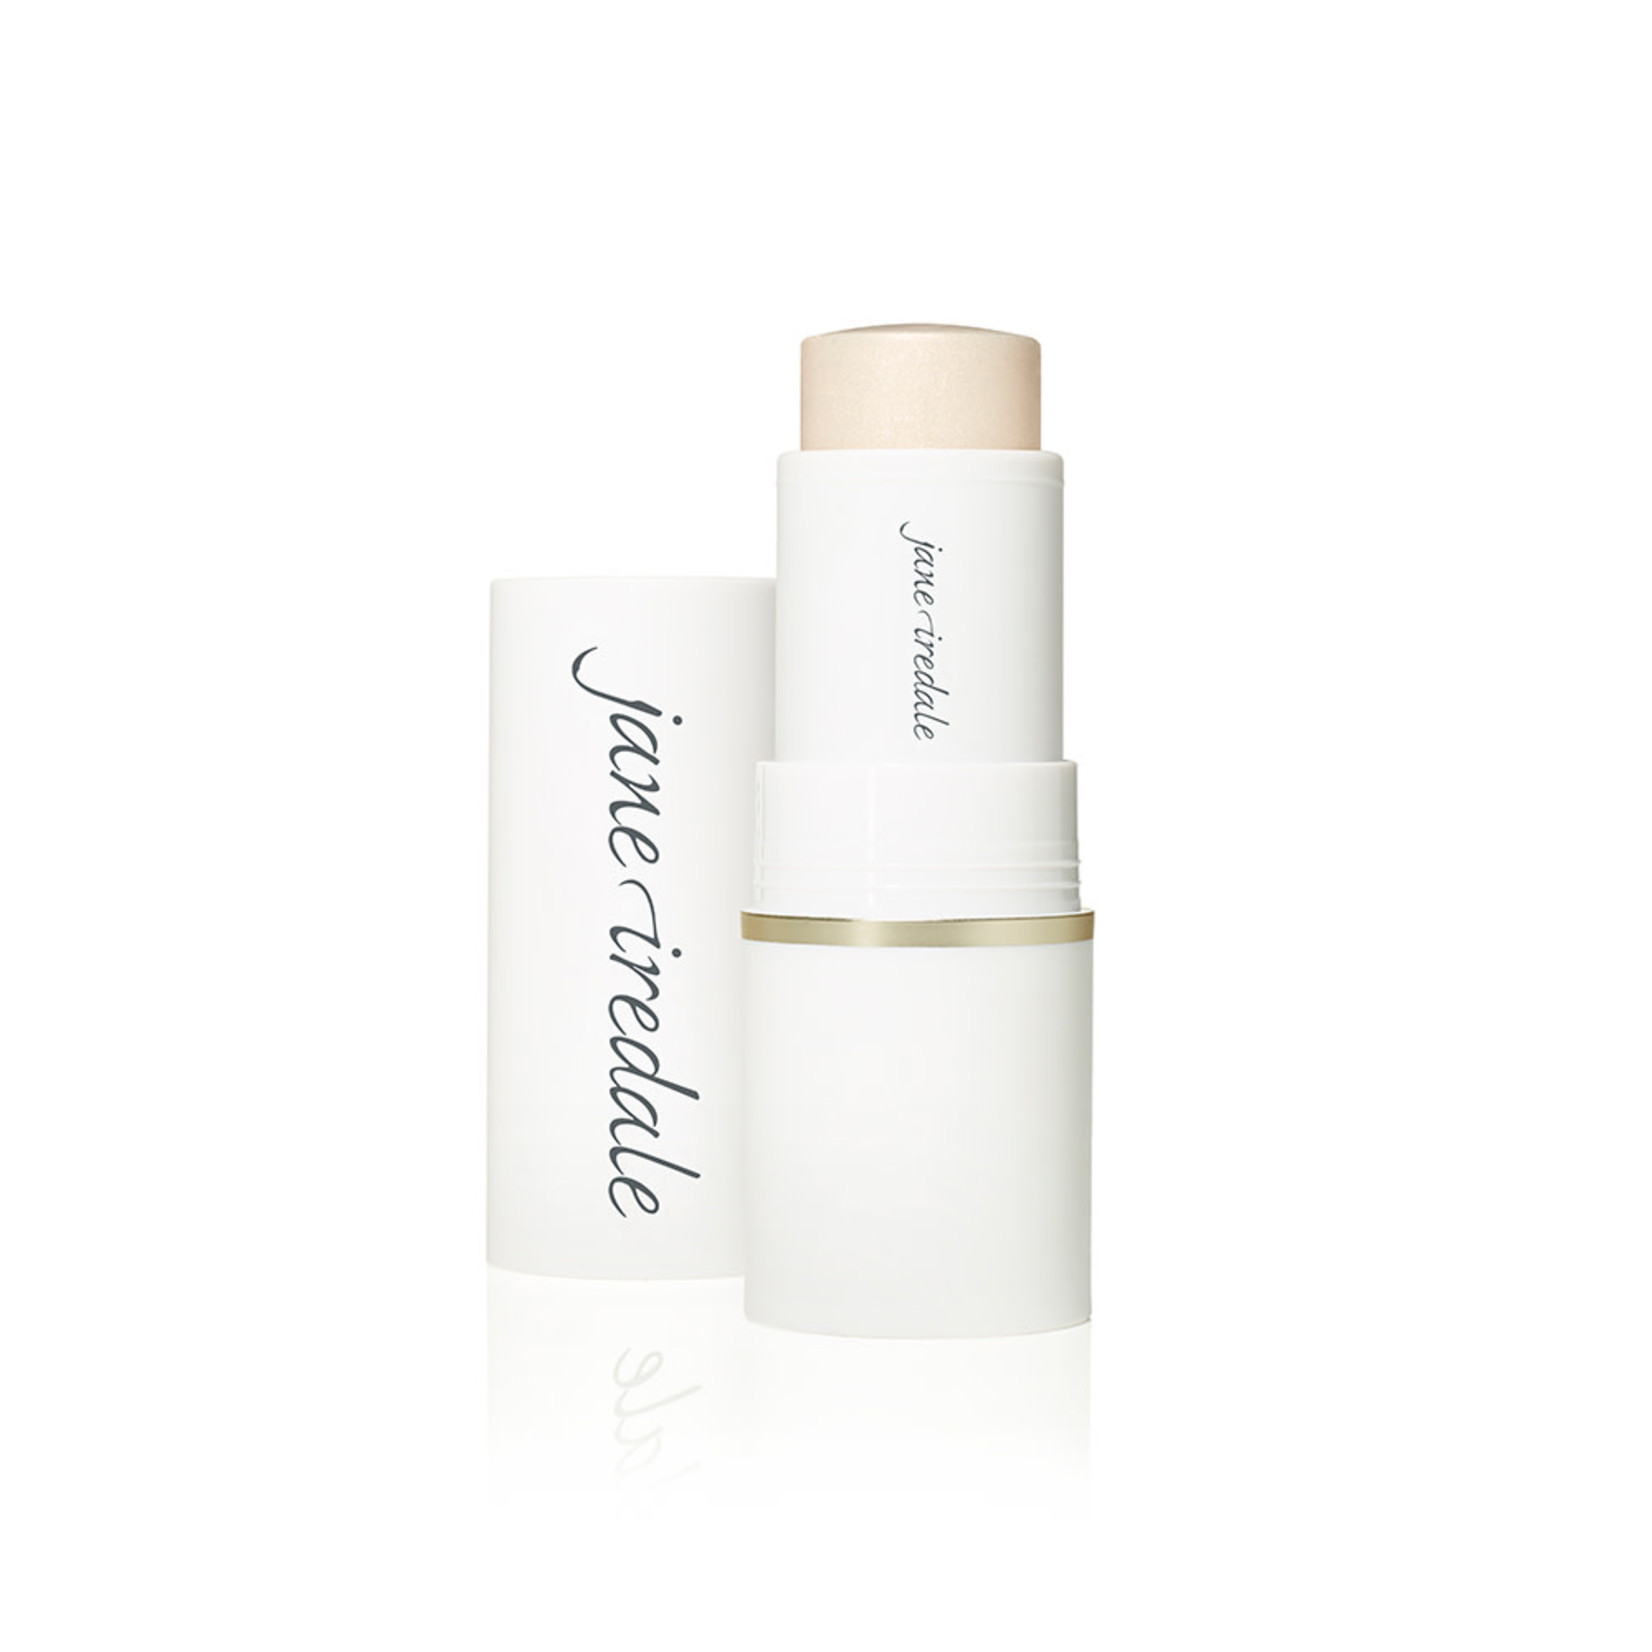 jane iredale Glow Time highlighter stick - Solstice